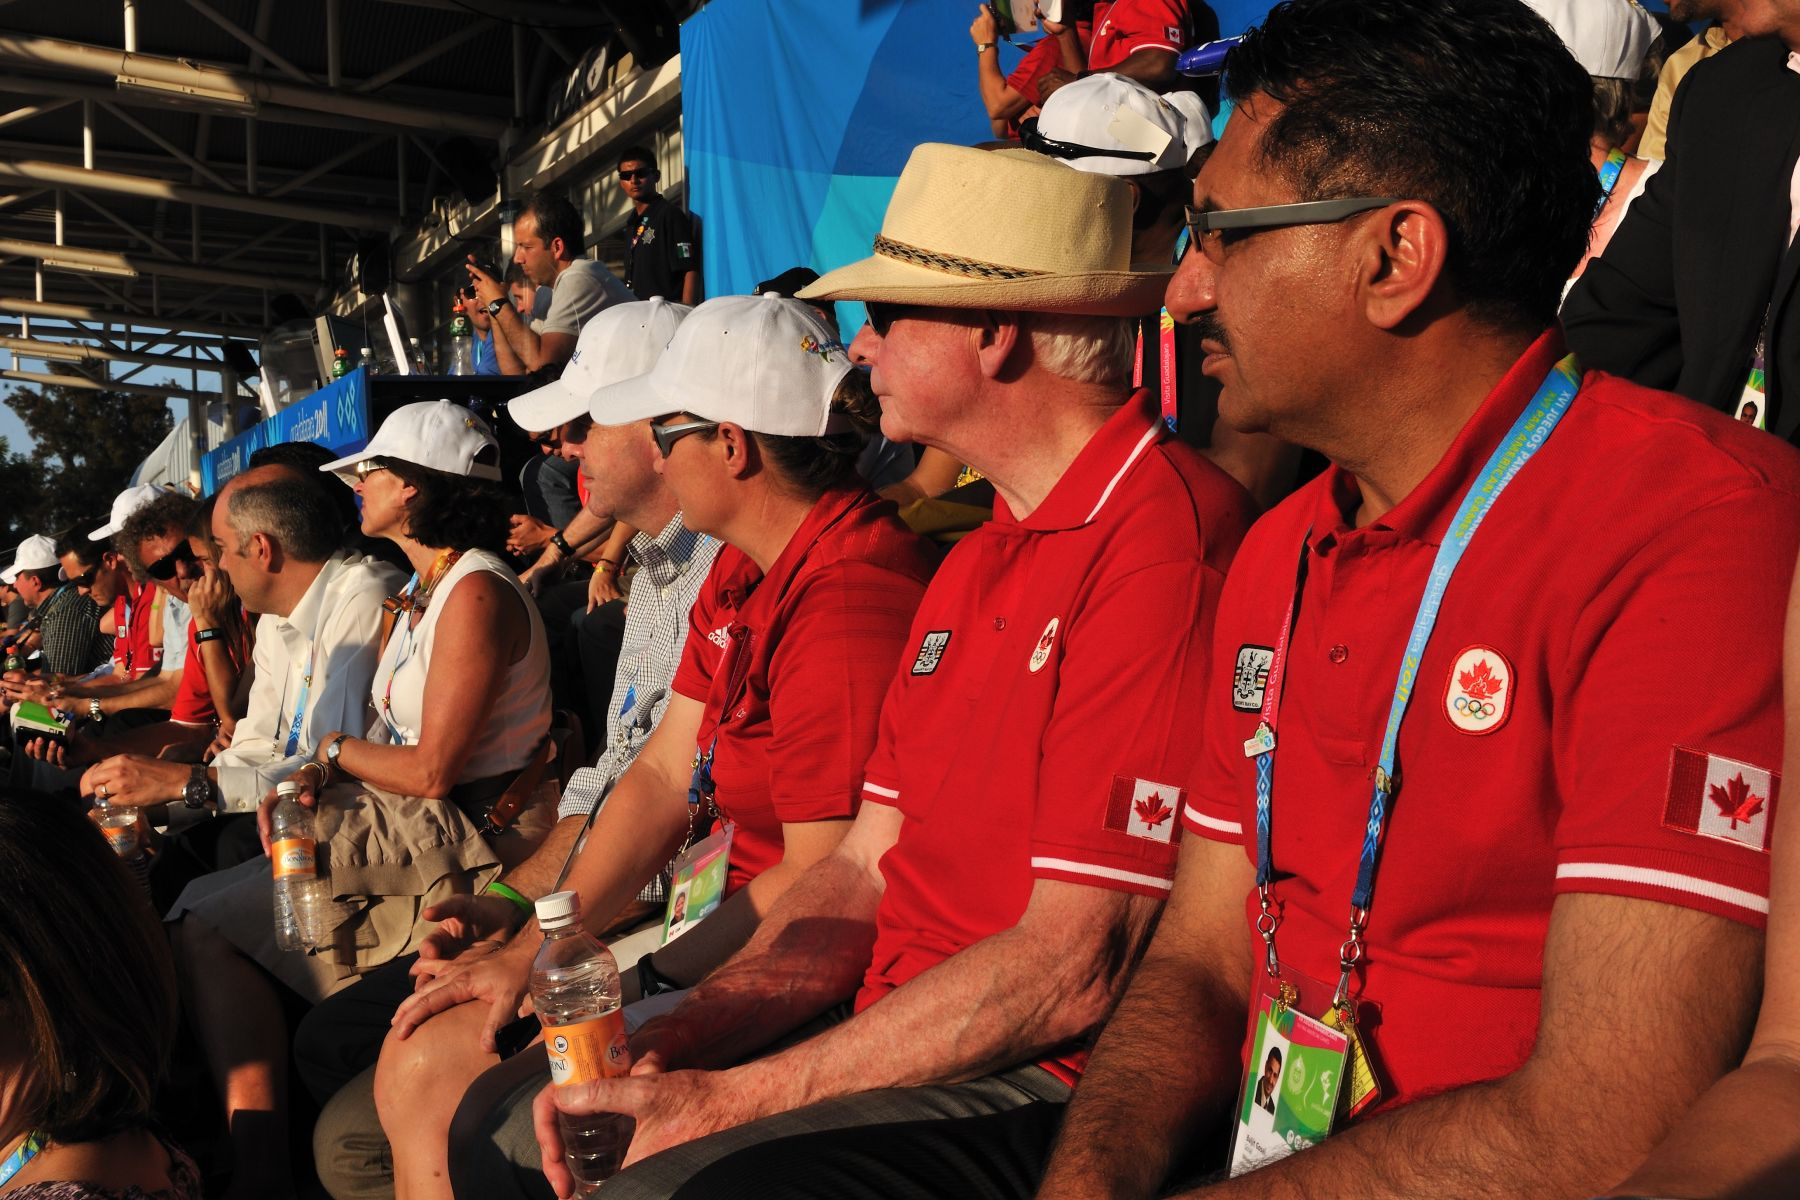 The Governor General was joined by the Honourable Bal Gosal, Minister of State (Sport), to watch the game.